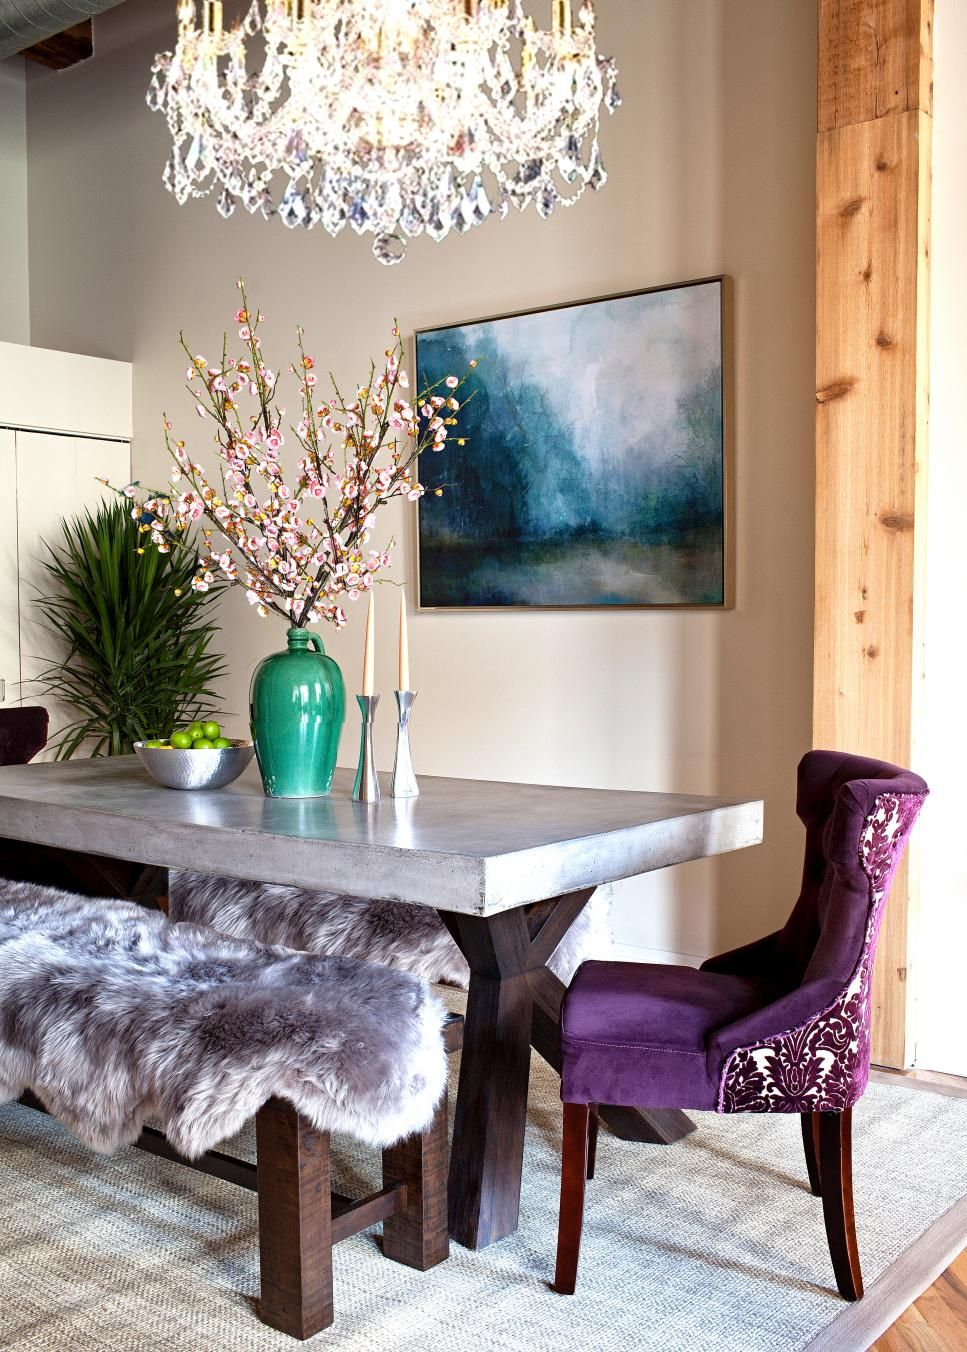 Rich Velvet Purple Chairs Sit At Opposing Ends Of The Table In